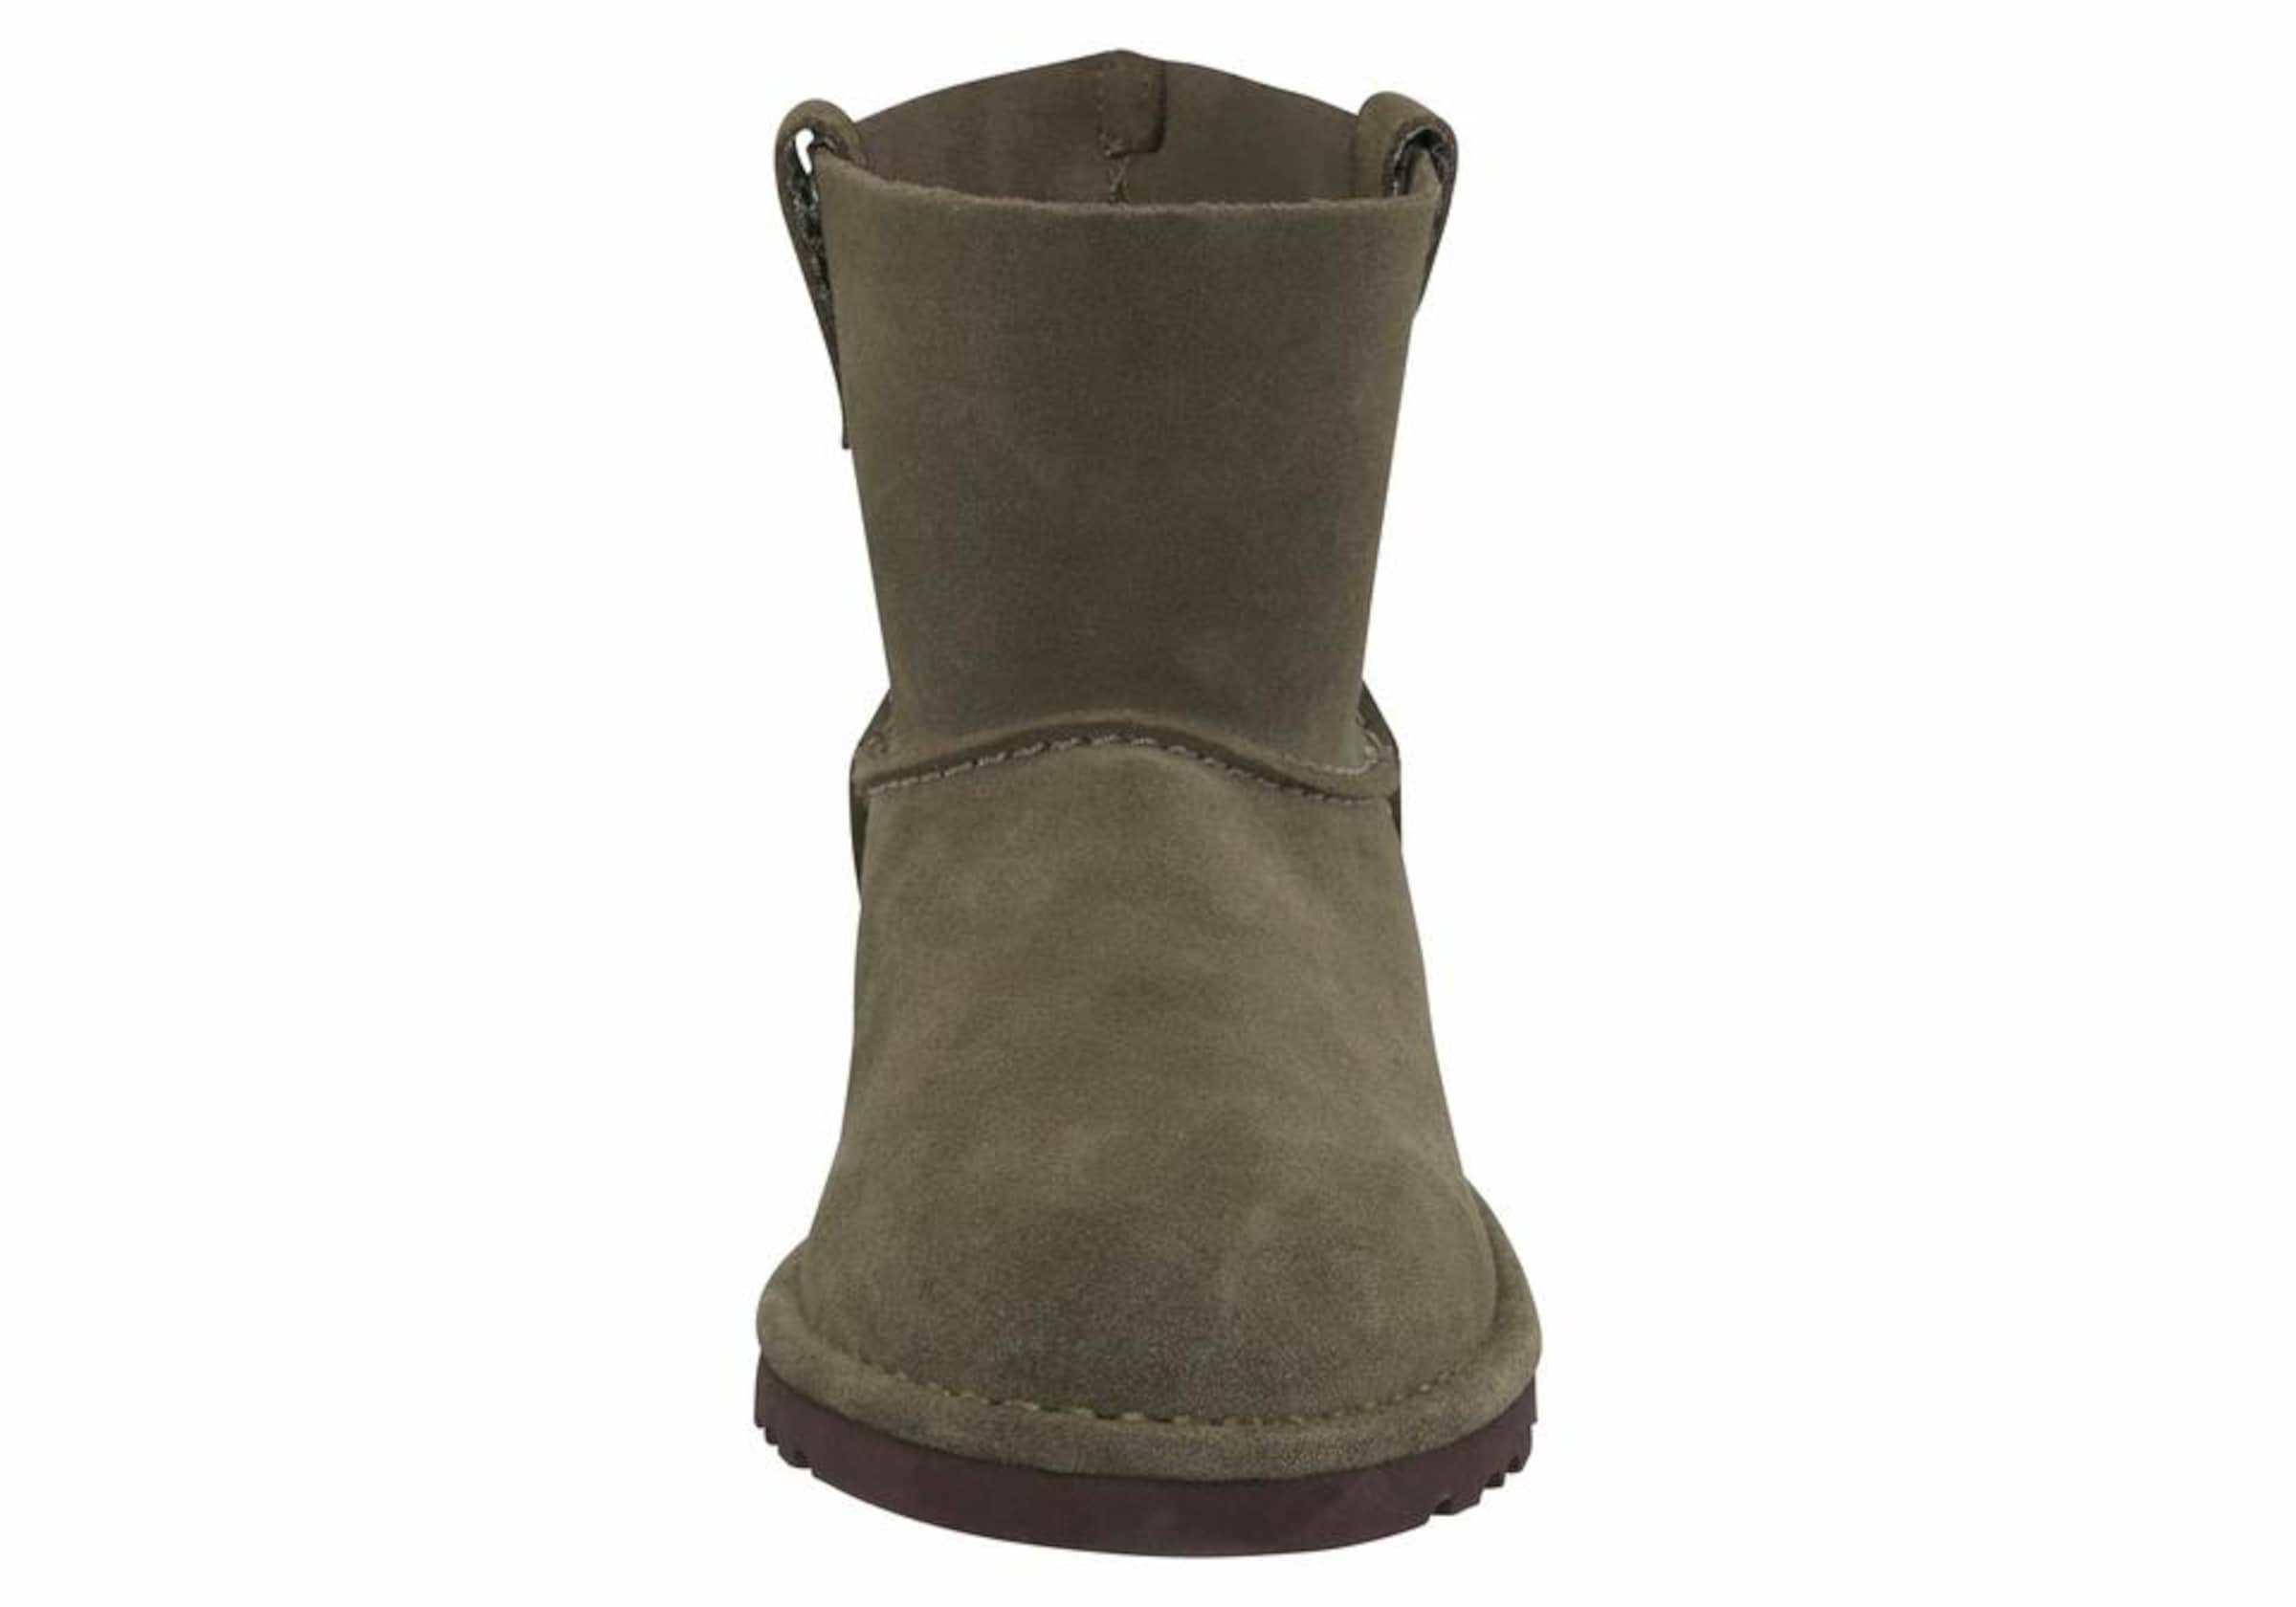 UGG UGG Stiefelette 'Classic Unlined Mini' Rabatt Neue Angebote K9H4vY